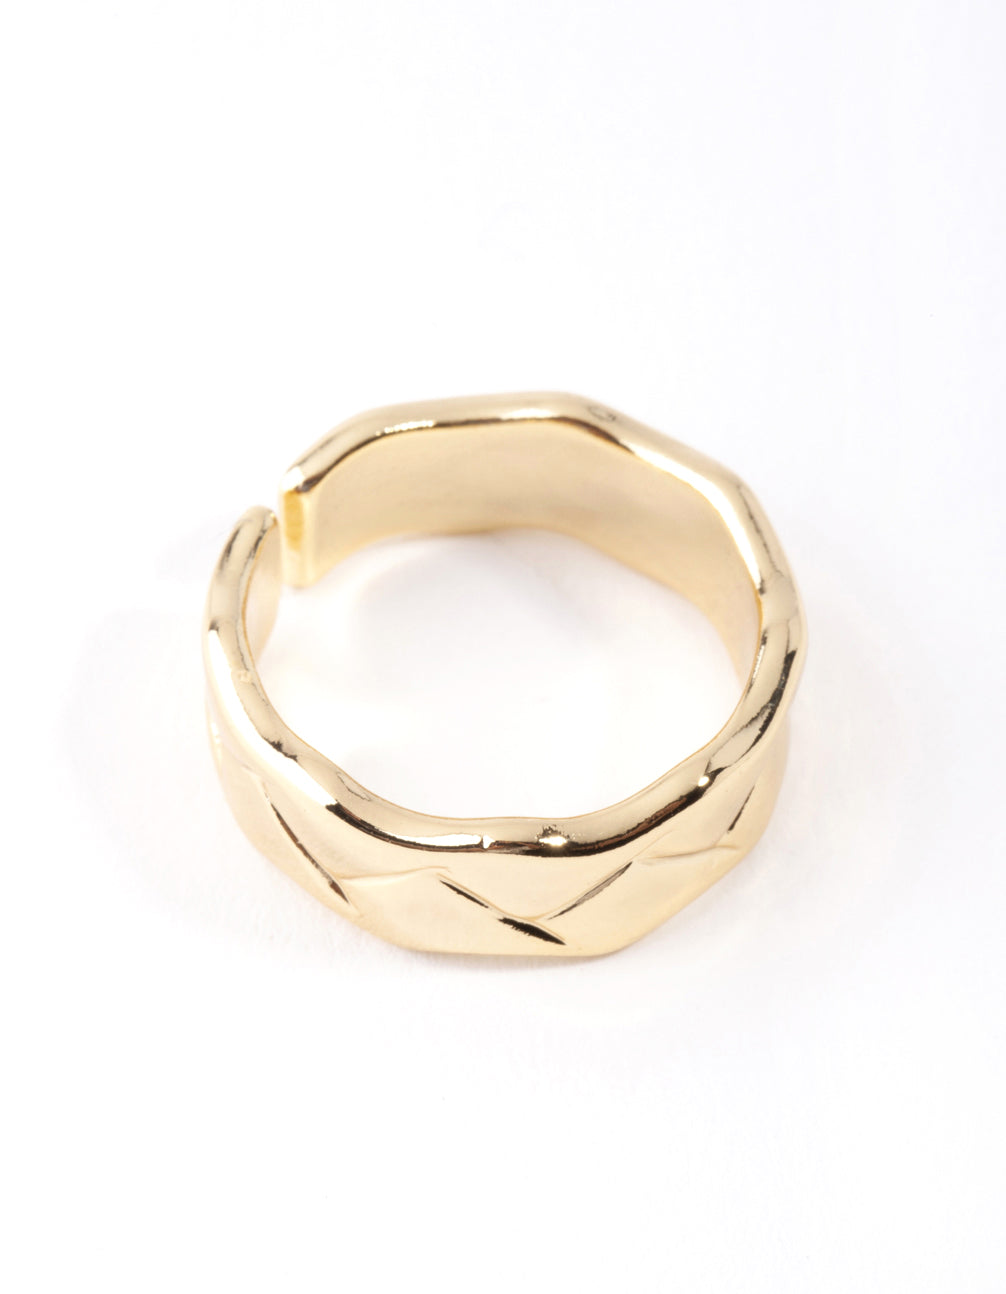 Real Gold Plated Geometric Molten Adjustable Ring